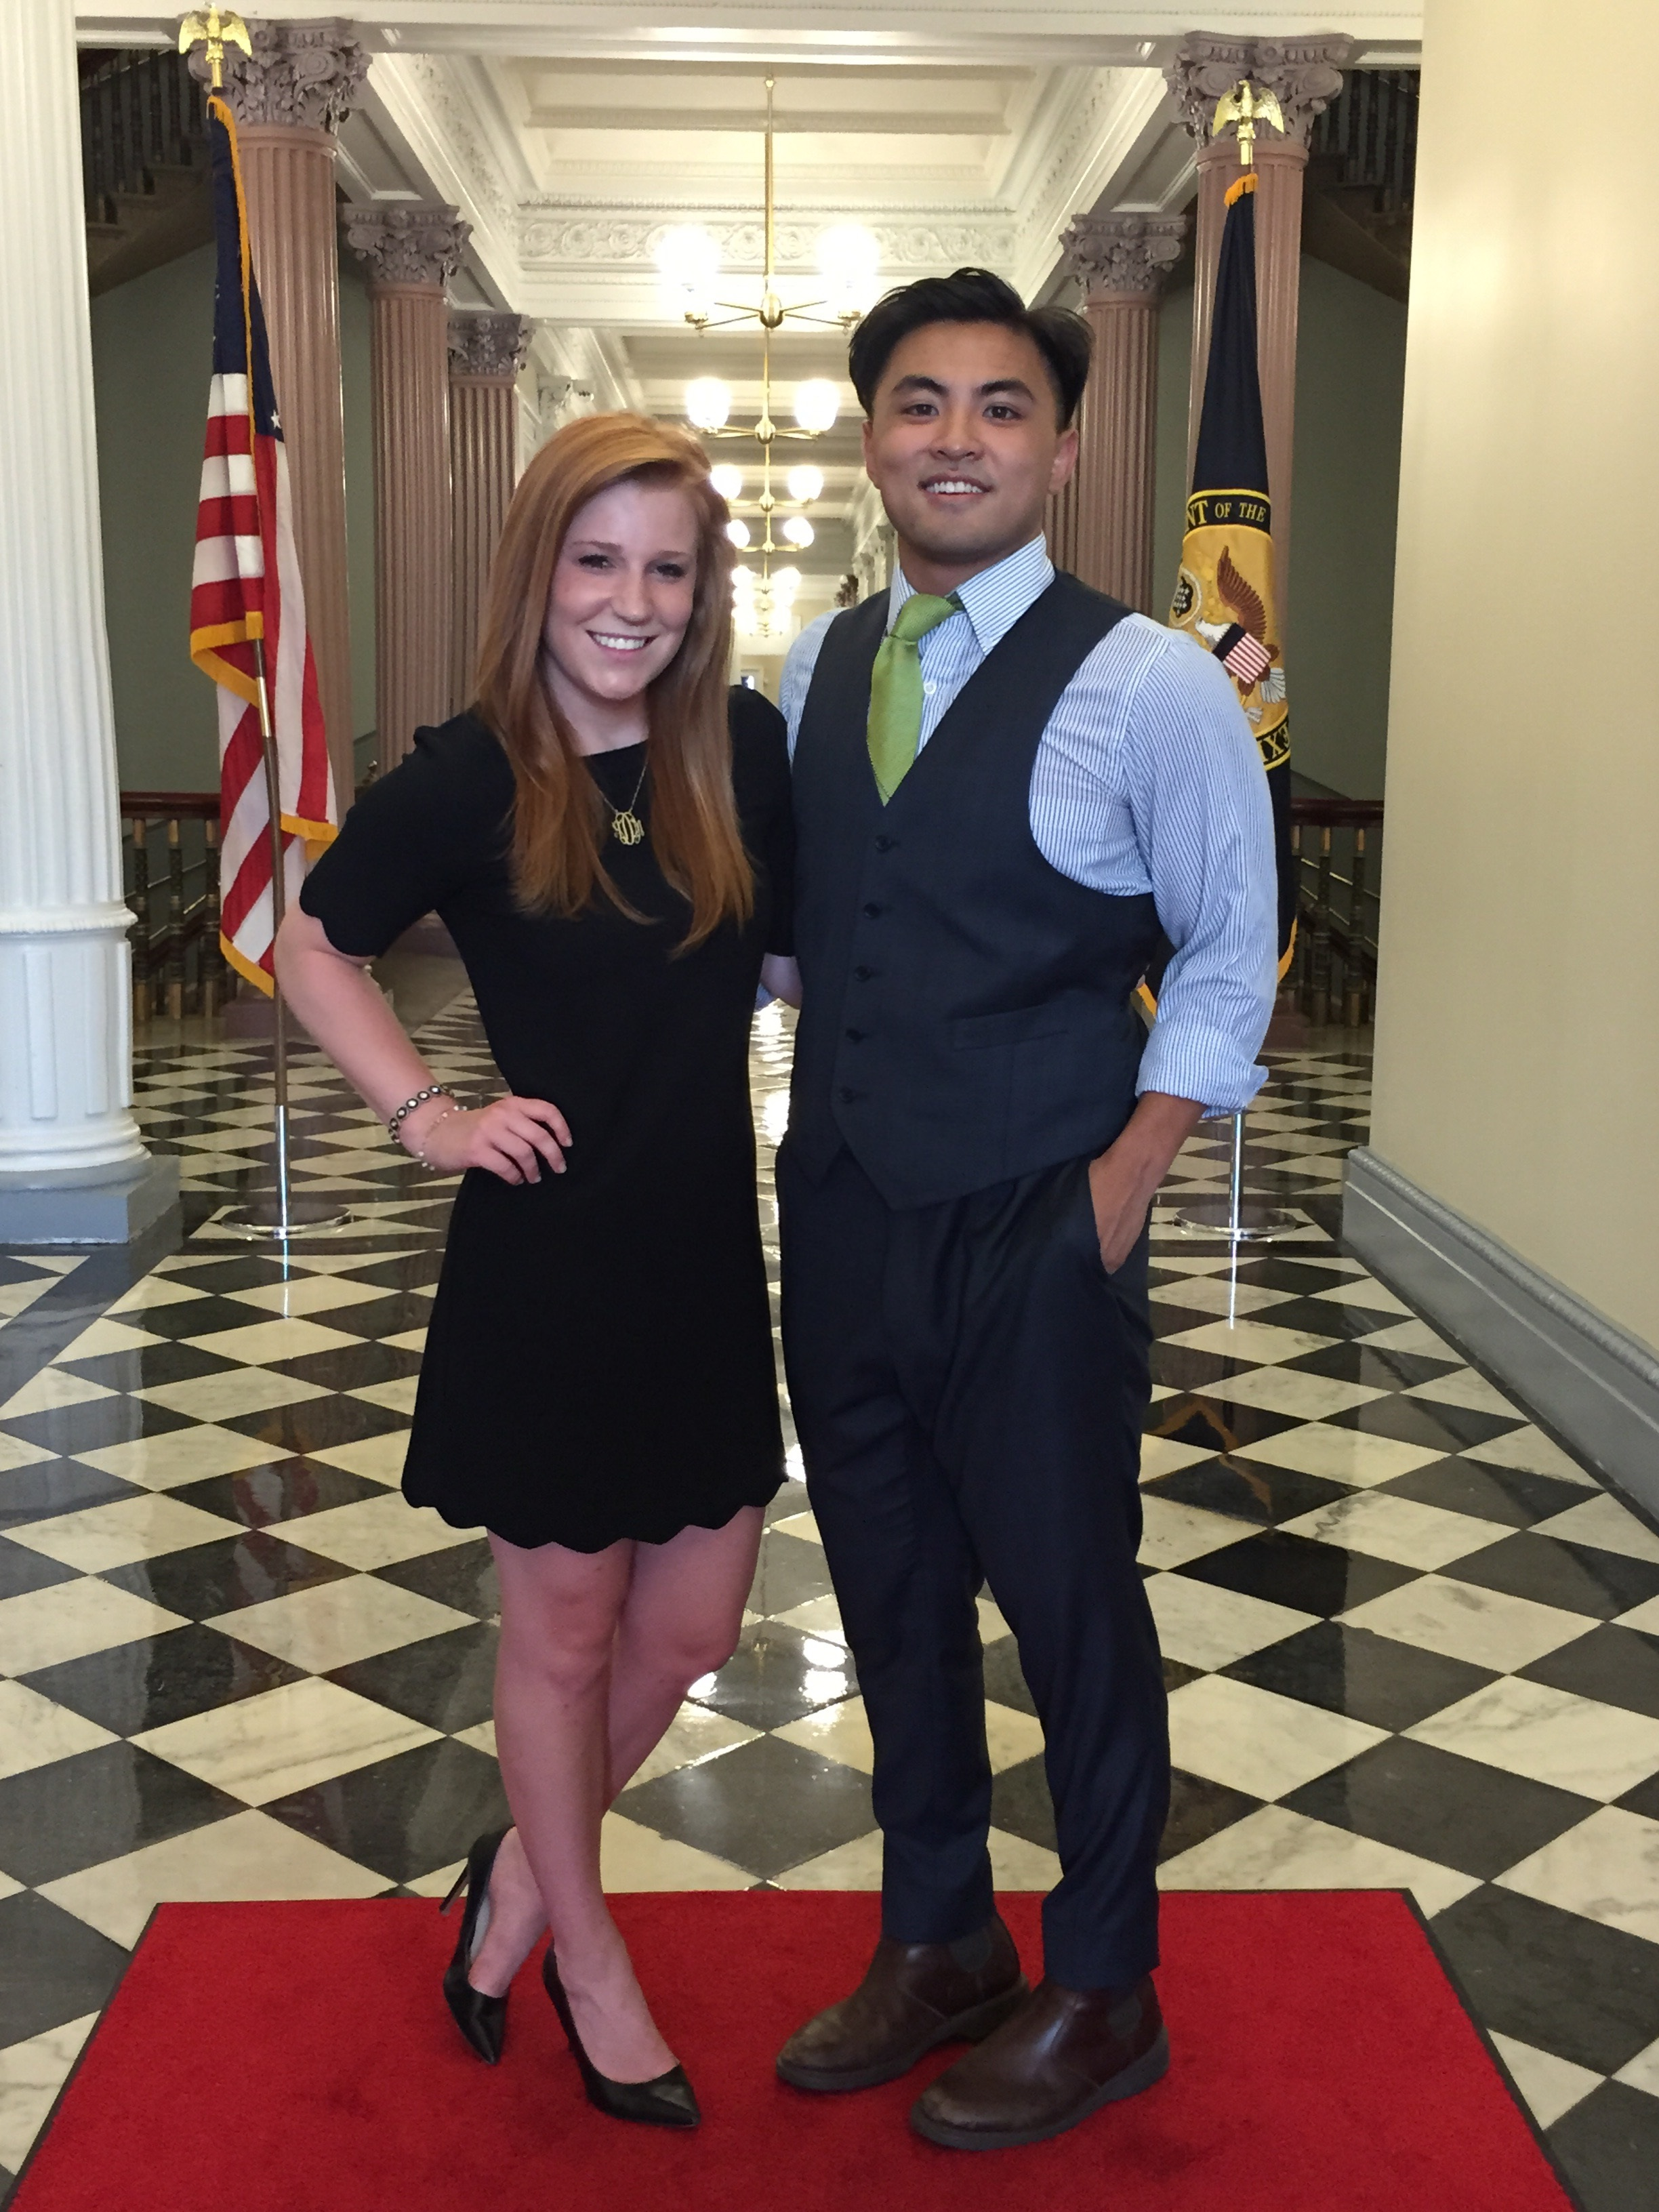 Seniors Alena Deveau and Max Luong in the White House for their summer internship